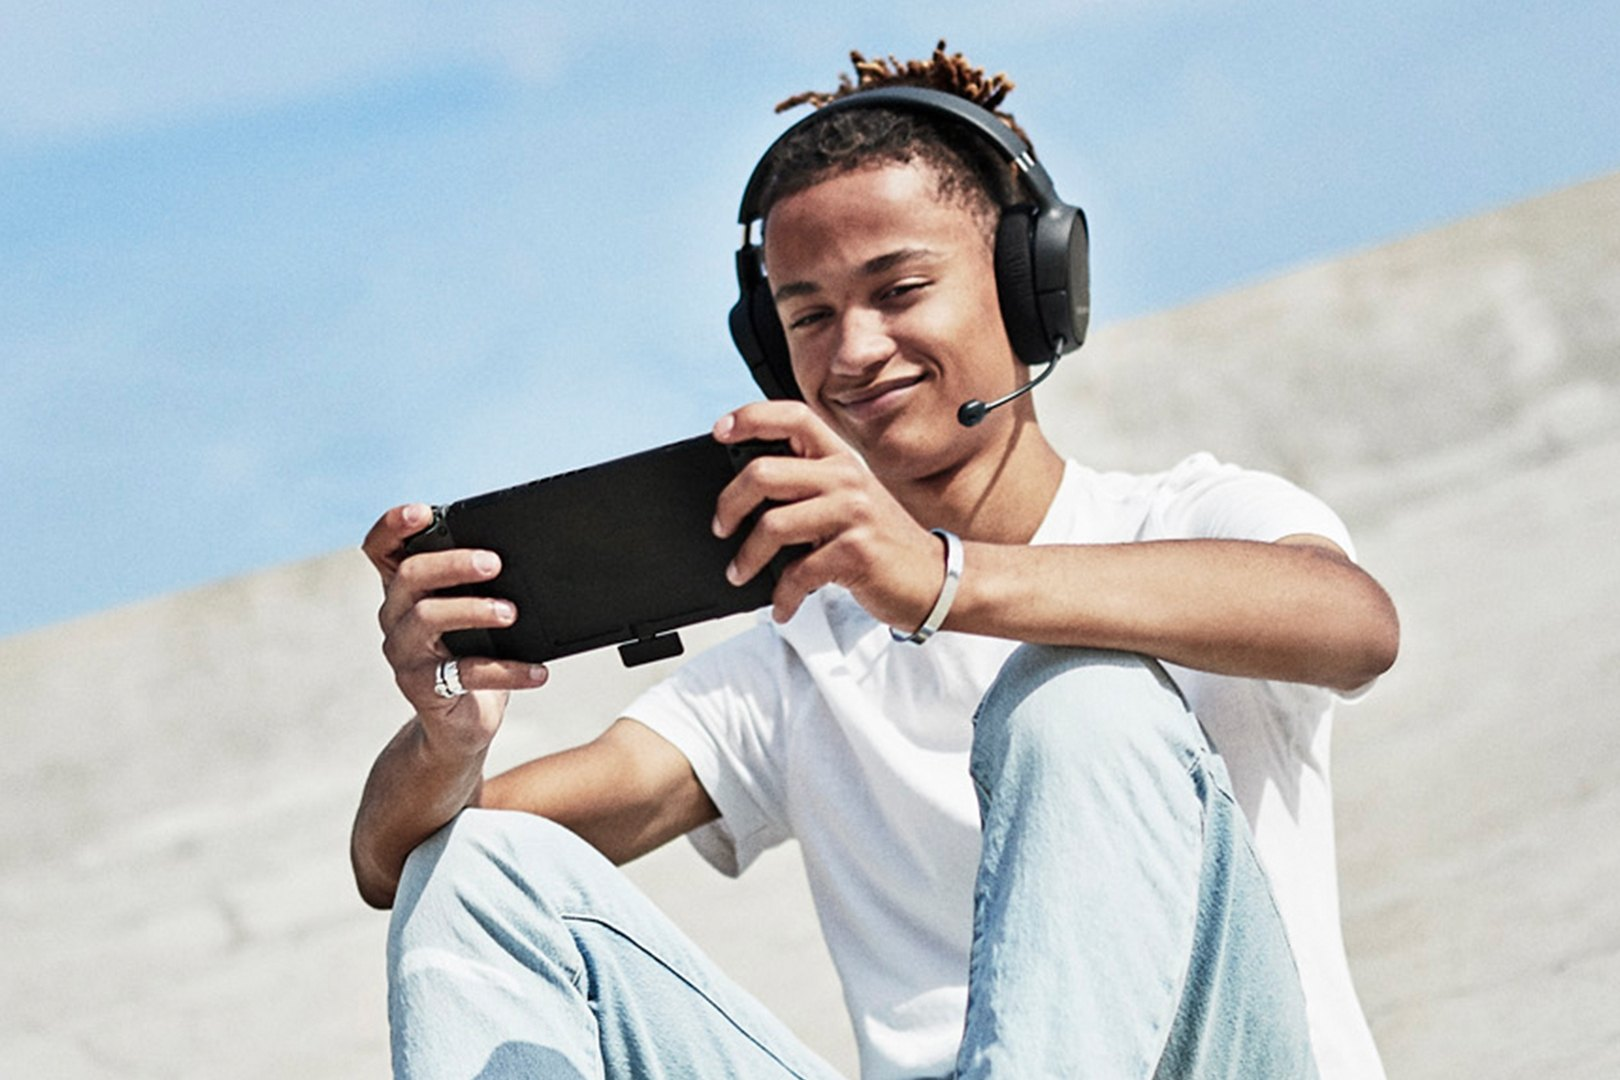 A gamer enjoying the sweet sounds of the Arctis 1 Wireless Headset while gaming on Nintendo Switch.